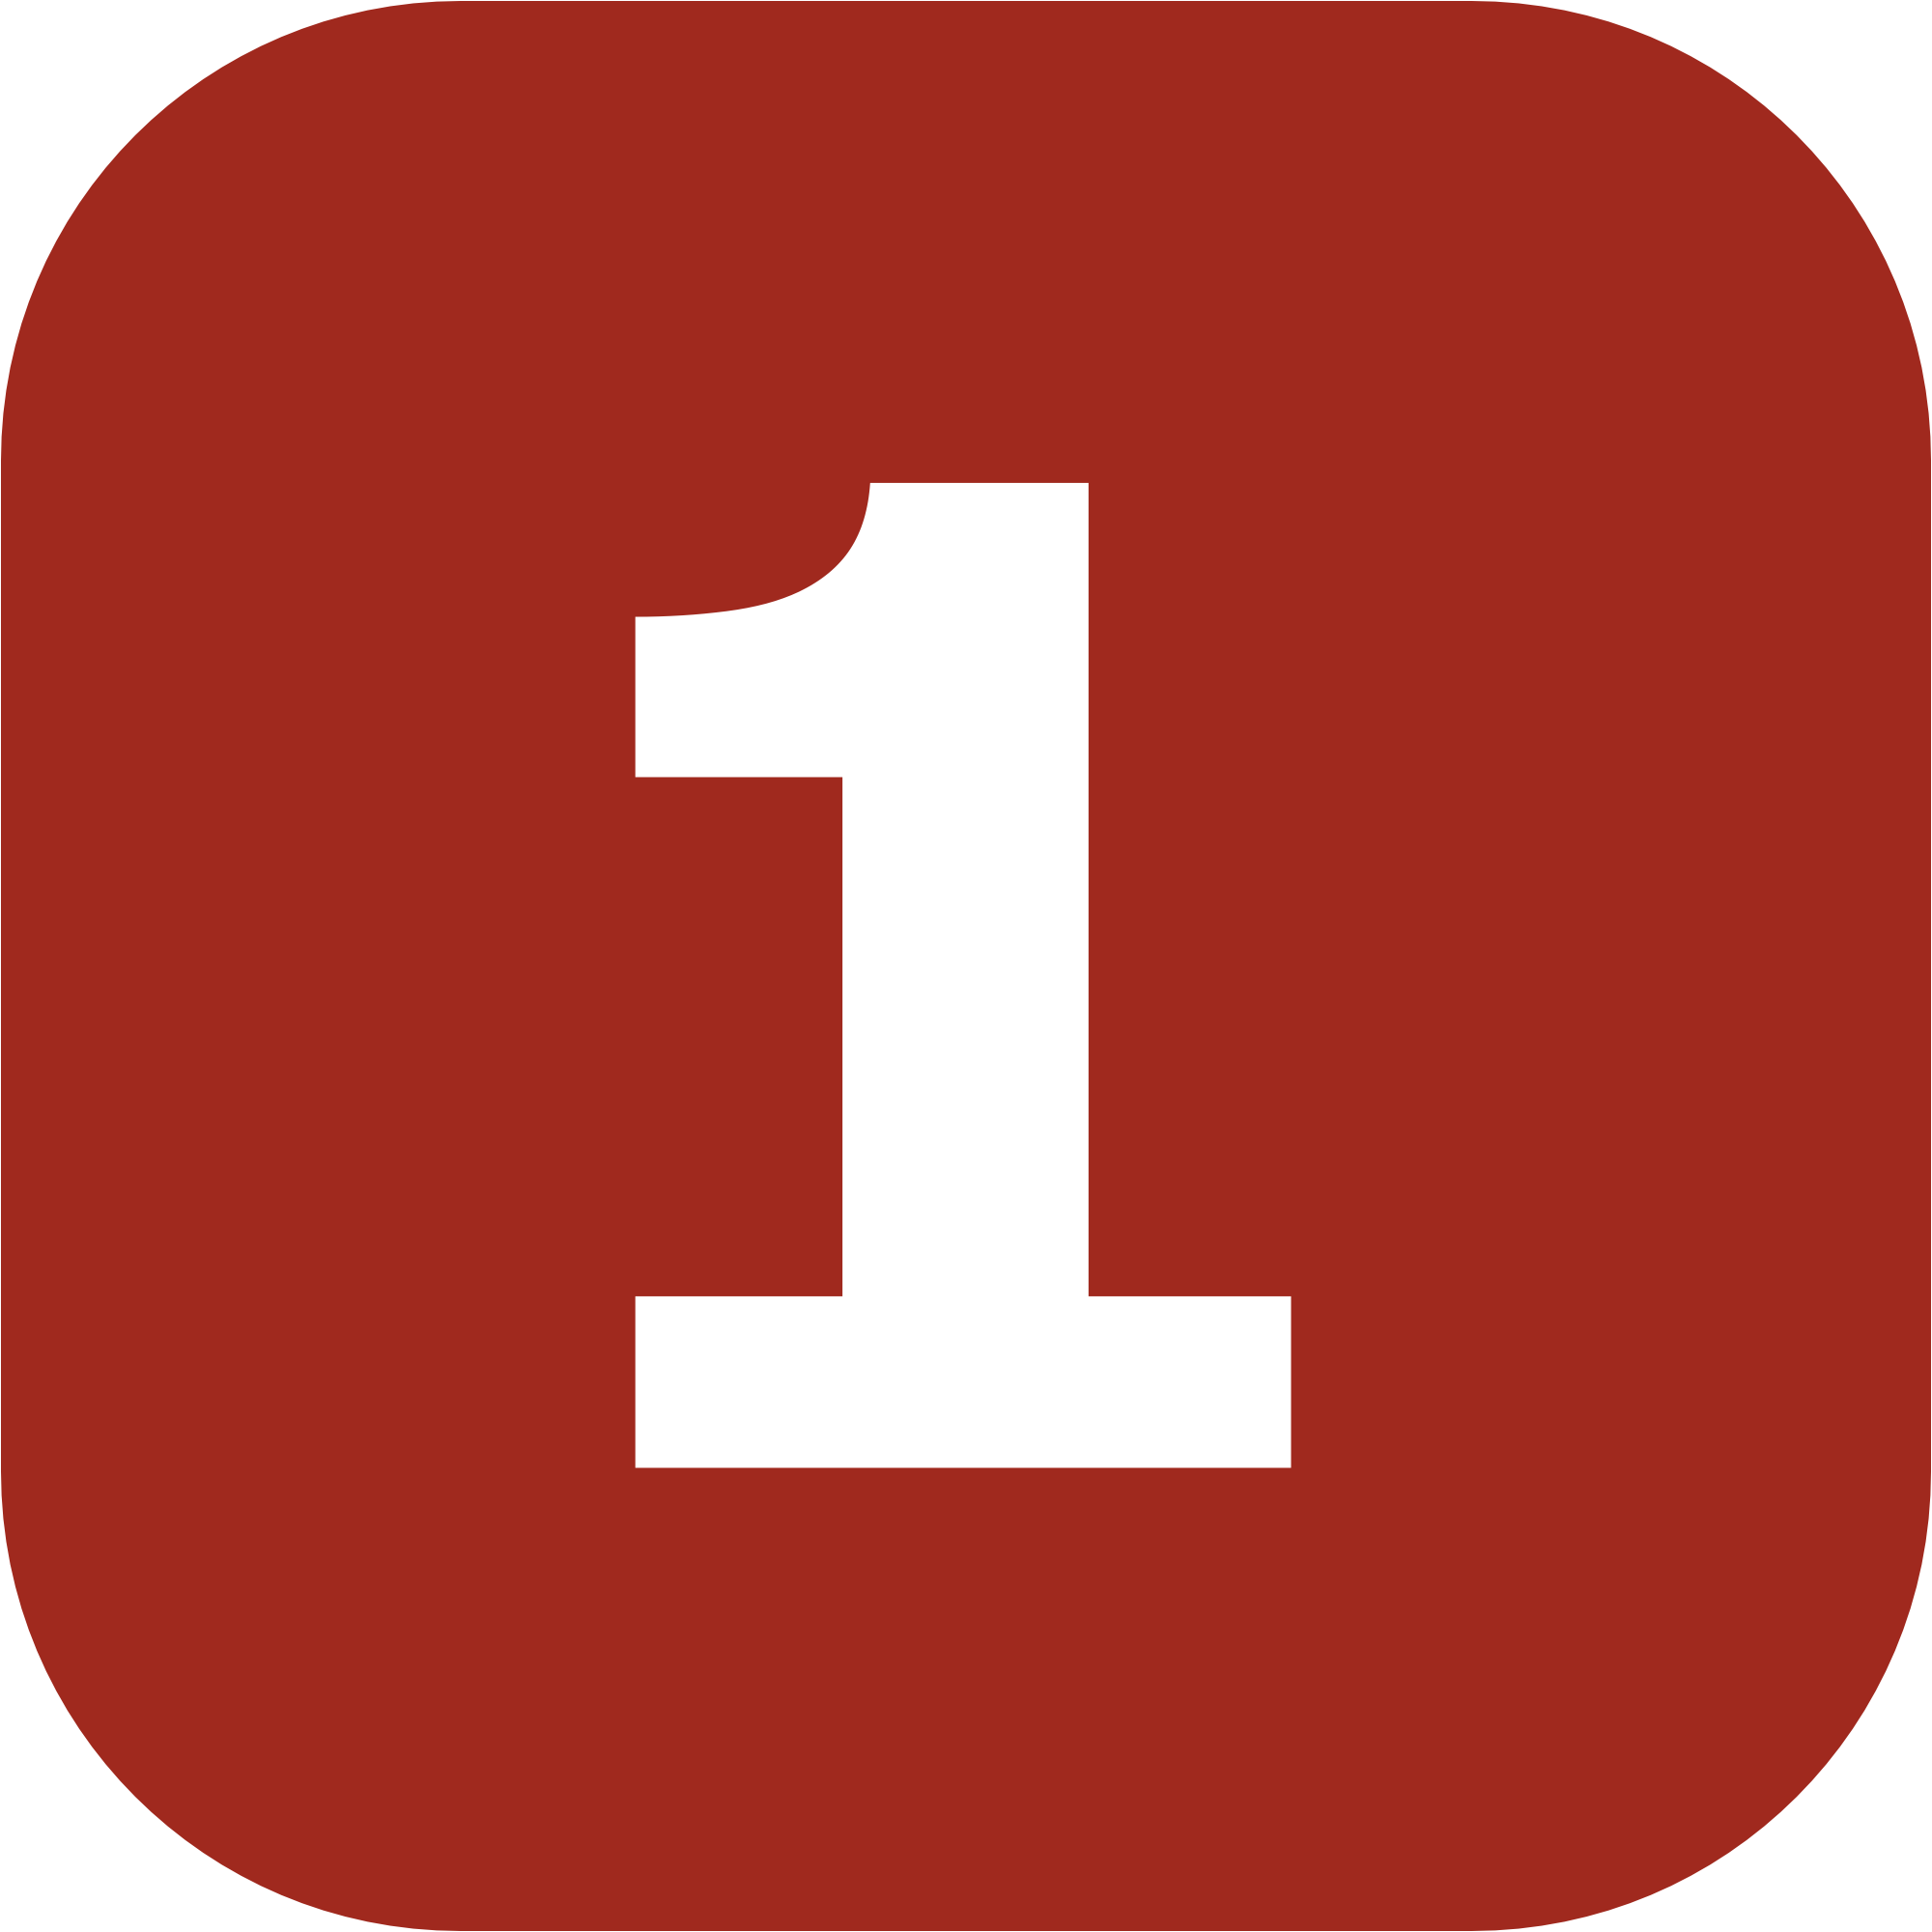 File:MB line 1 icon.png